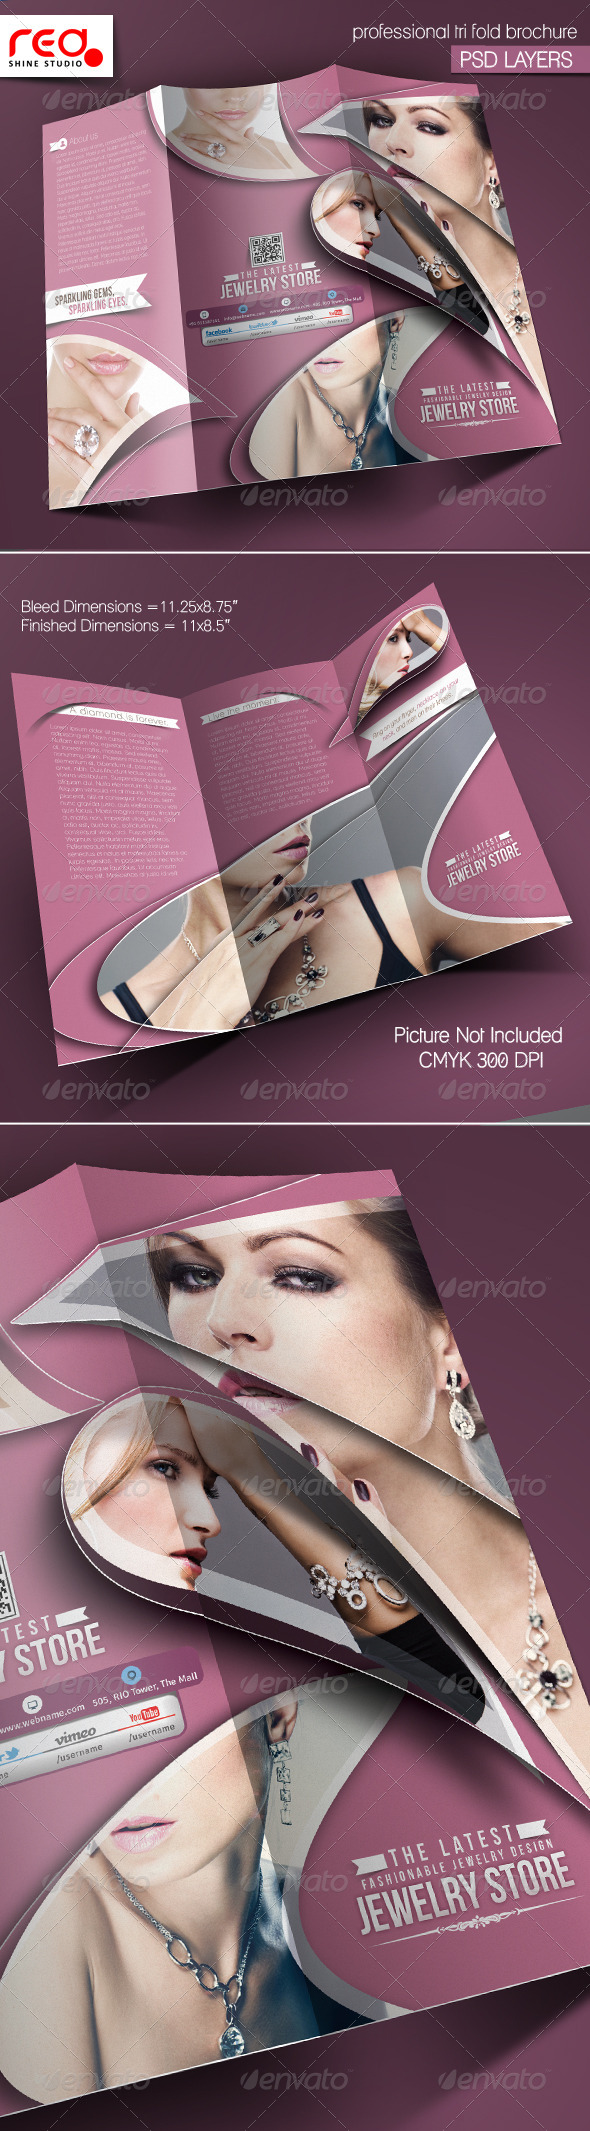 GraphicRiver Jewelry Shop Trifold Brochure Template 2 5886587